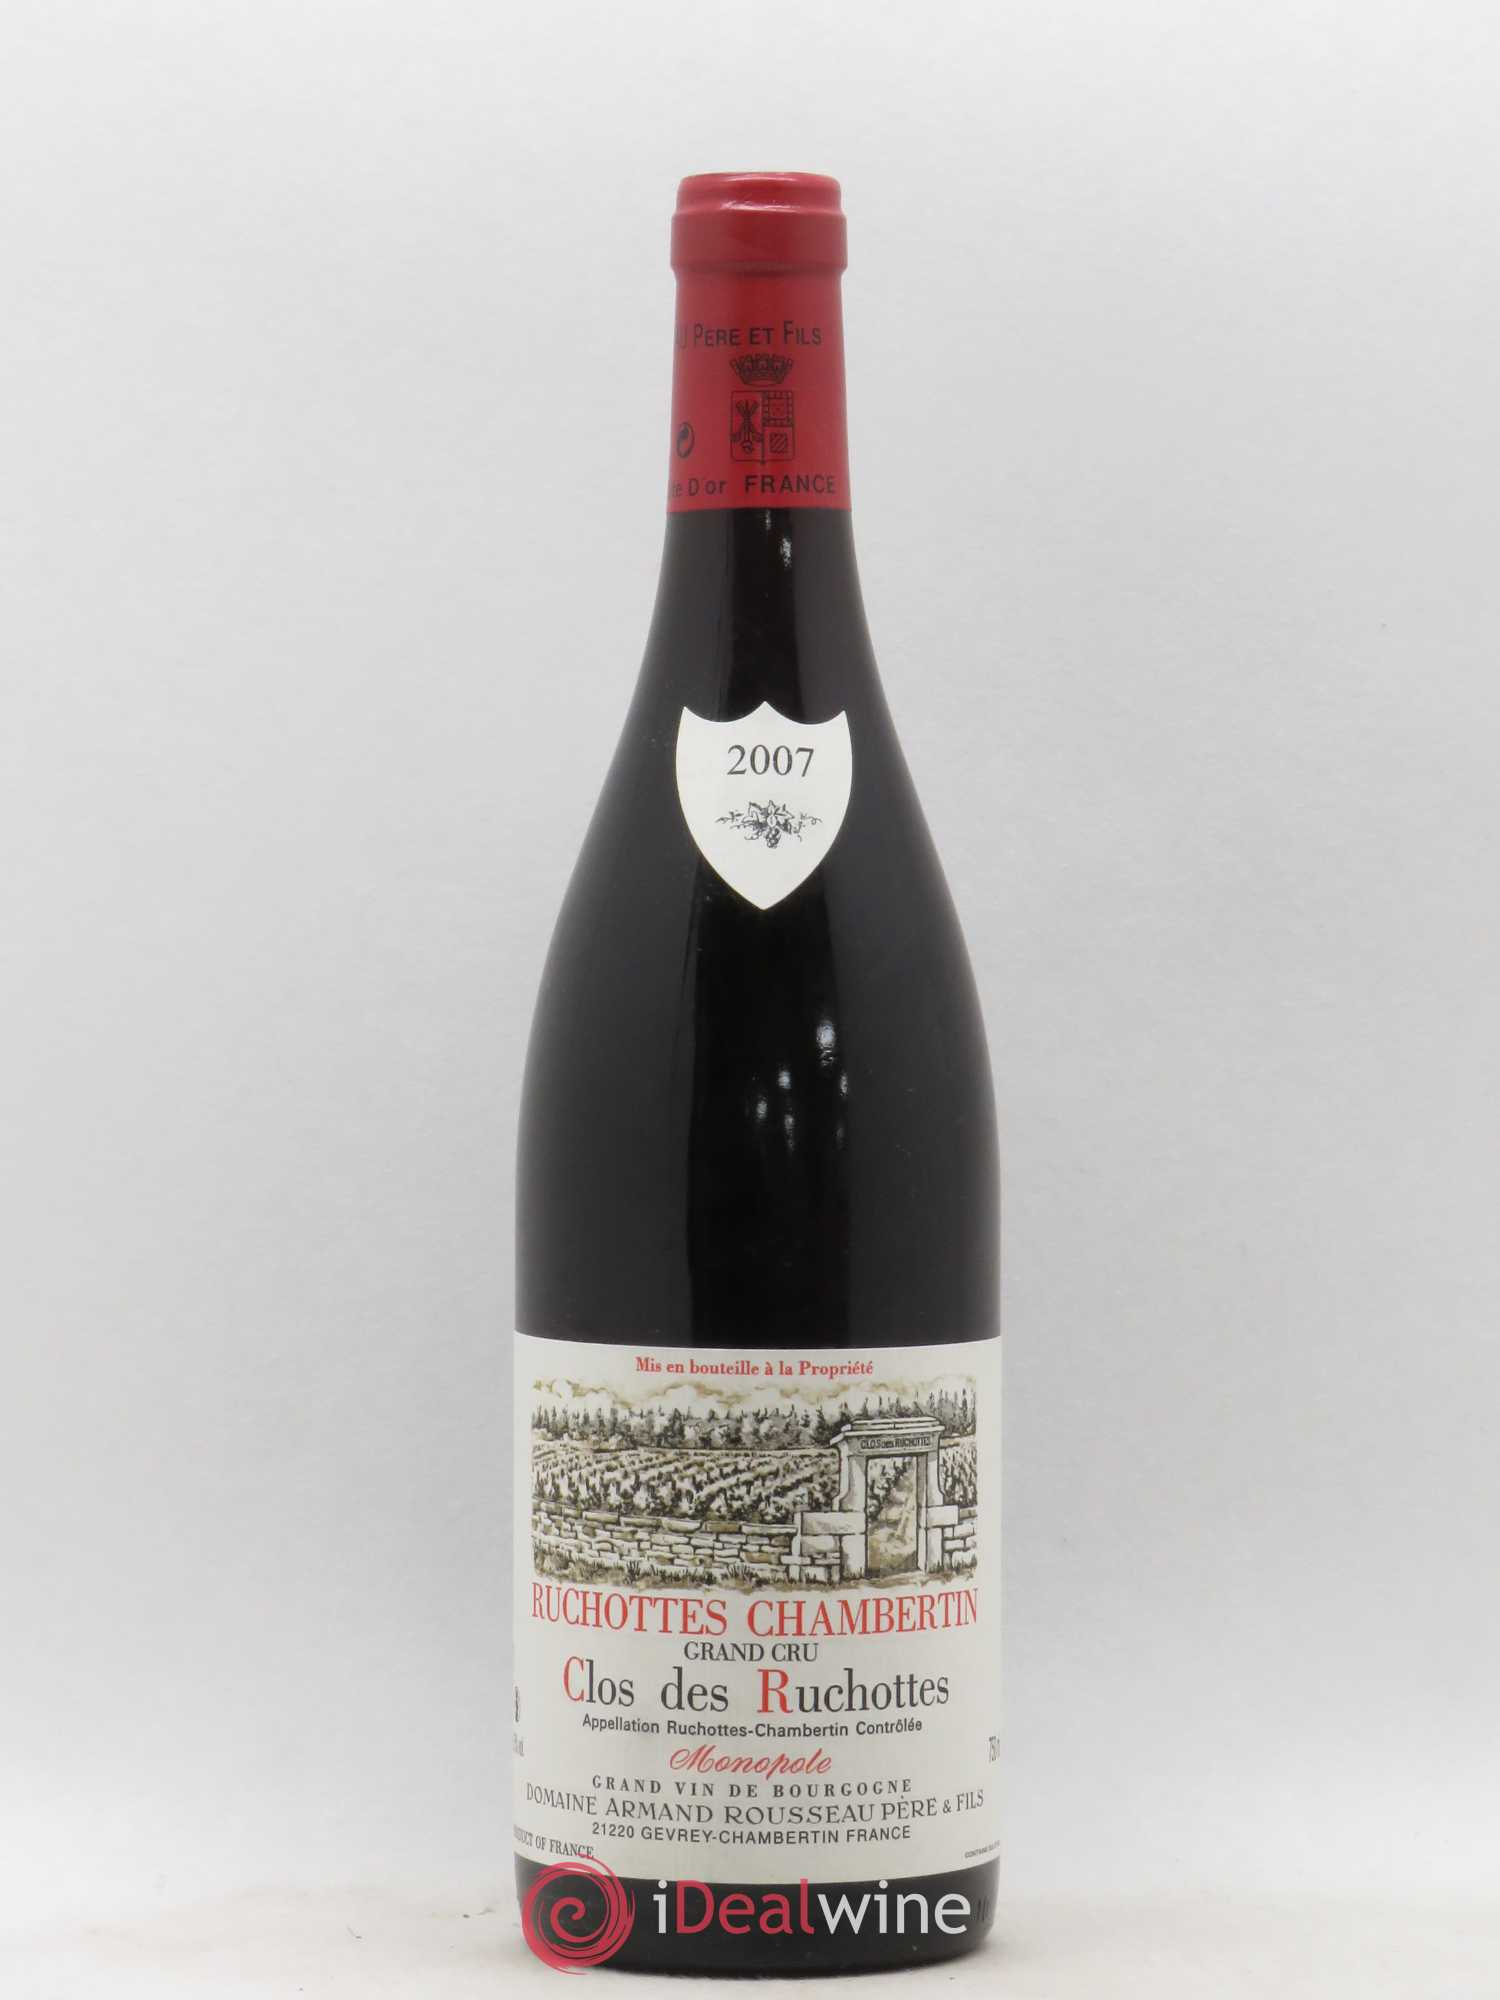 Ruchottes-Chambertin Grand Cru Clos des Ruchottes Armand Rousseau (Domaine)  2007 - Lot of 1 Bottle